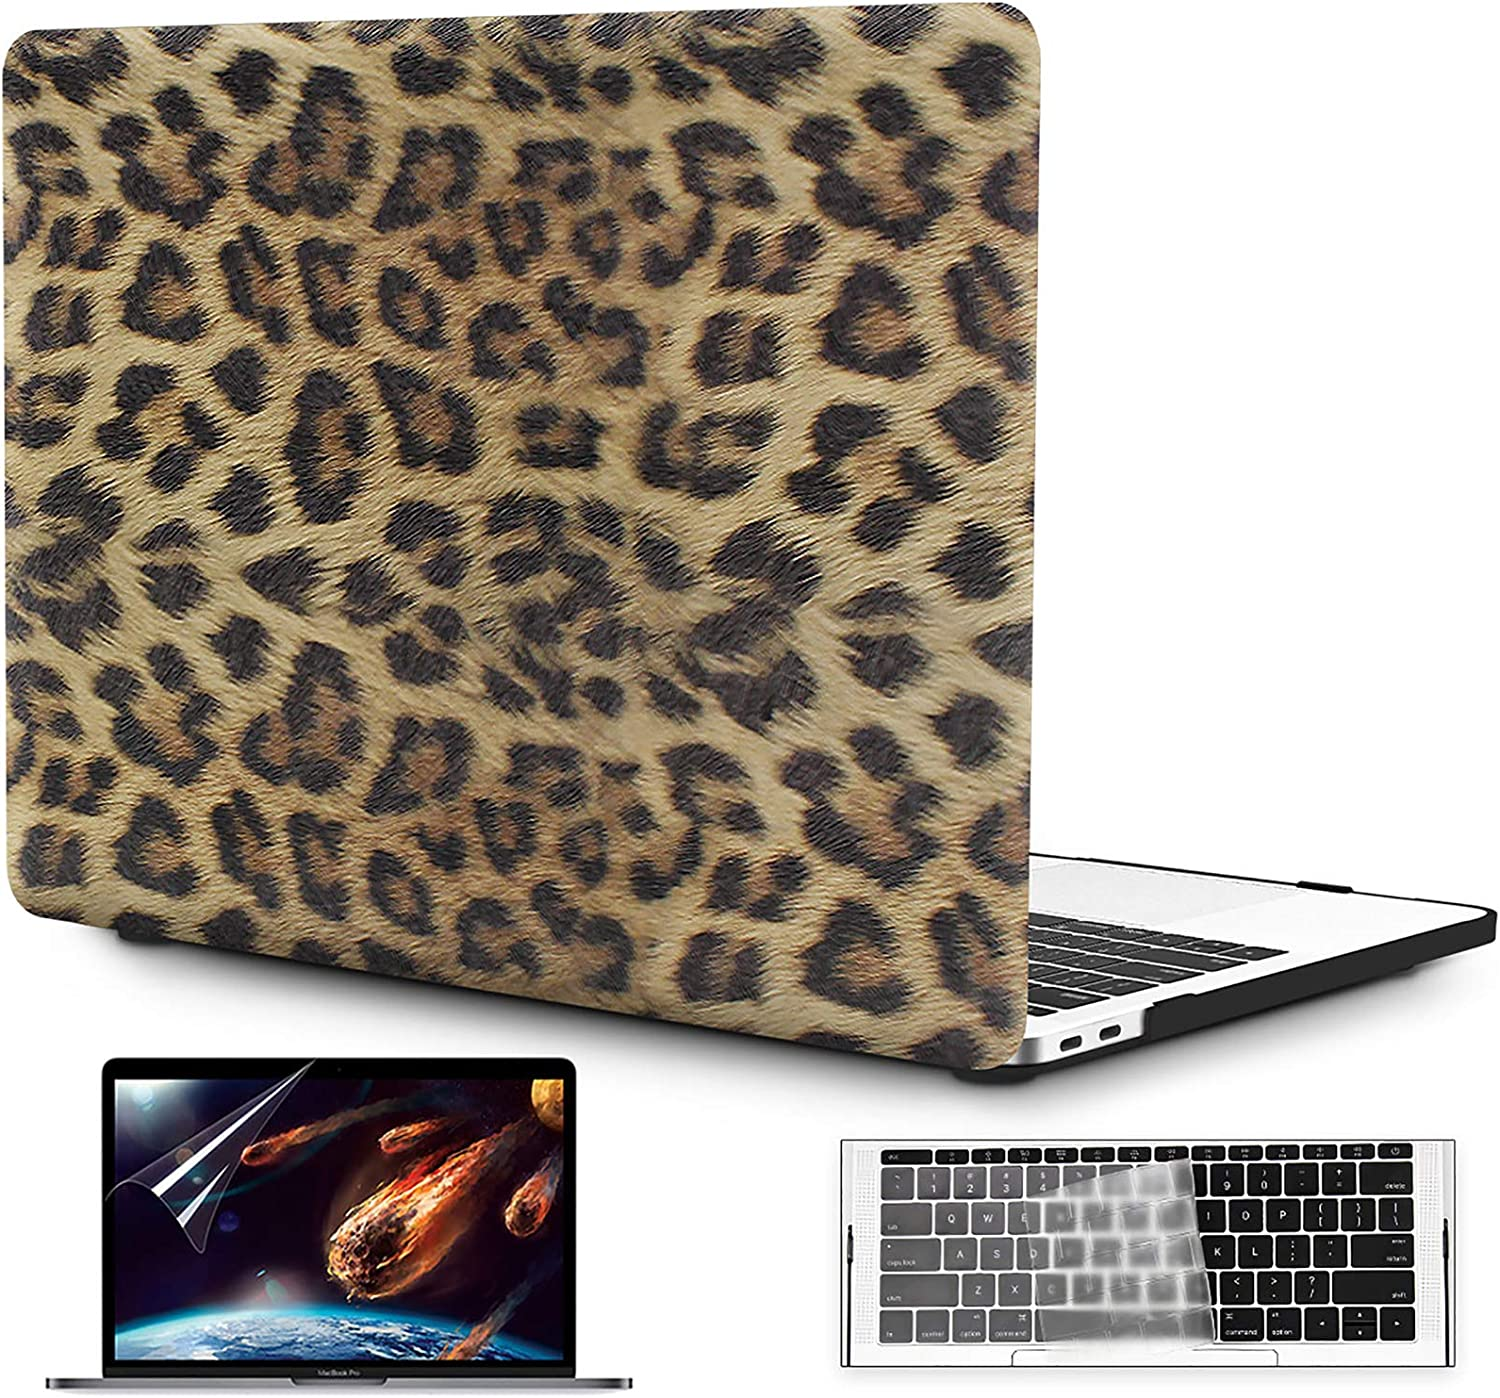 OneGet MacBook Pro 13 inch Case 2016 2017 2018 2019 Release A2159 A1989 A1706 A1708 PU Leopard Print PU Leather Hard Shell Case&Keyboard Cover&Screen Protector Compatible with MacBook Pro 13 (8151)